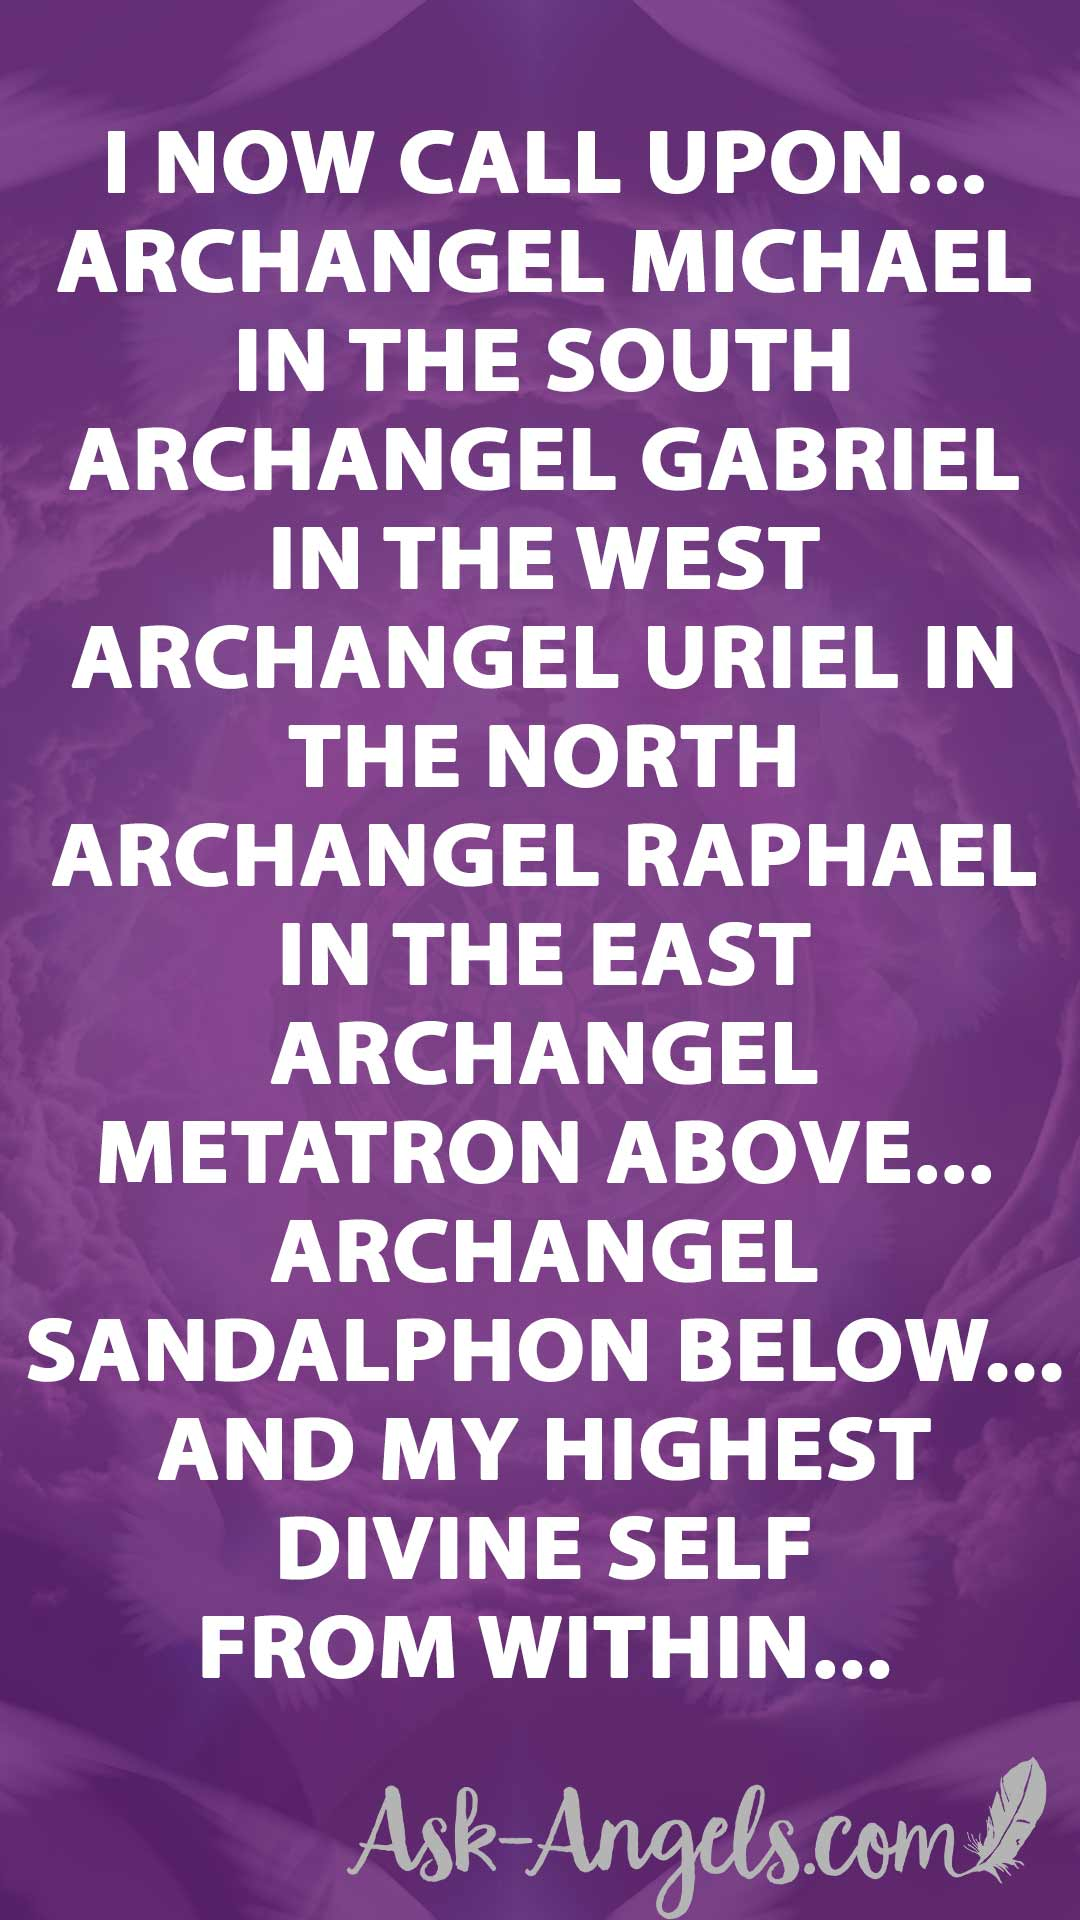 Archangel Invocation - Calling in the Archangels from every direction. East, South, West, North, Above, Below... Within...